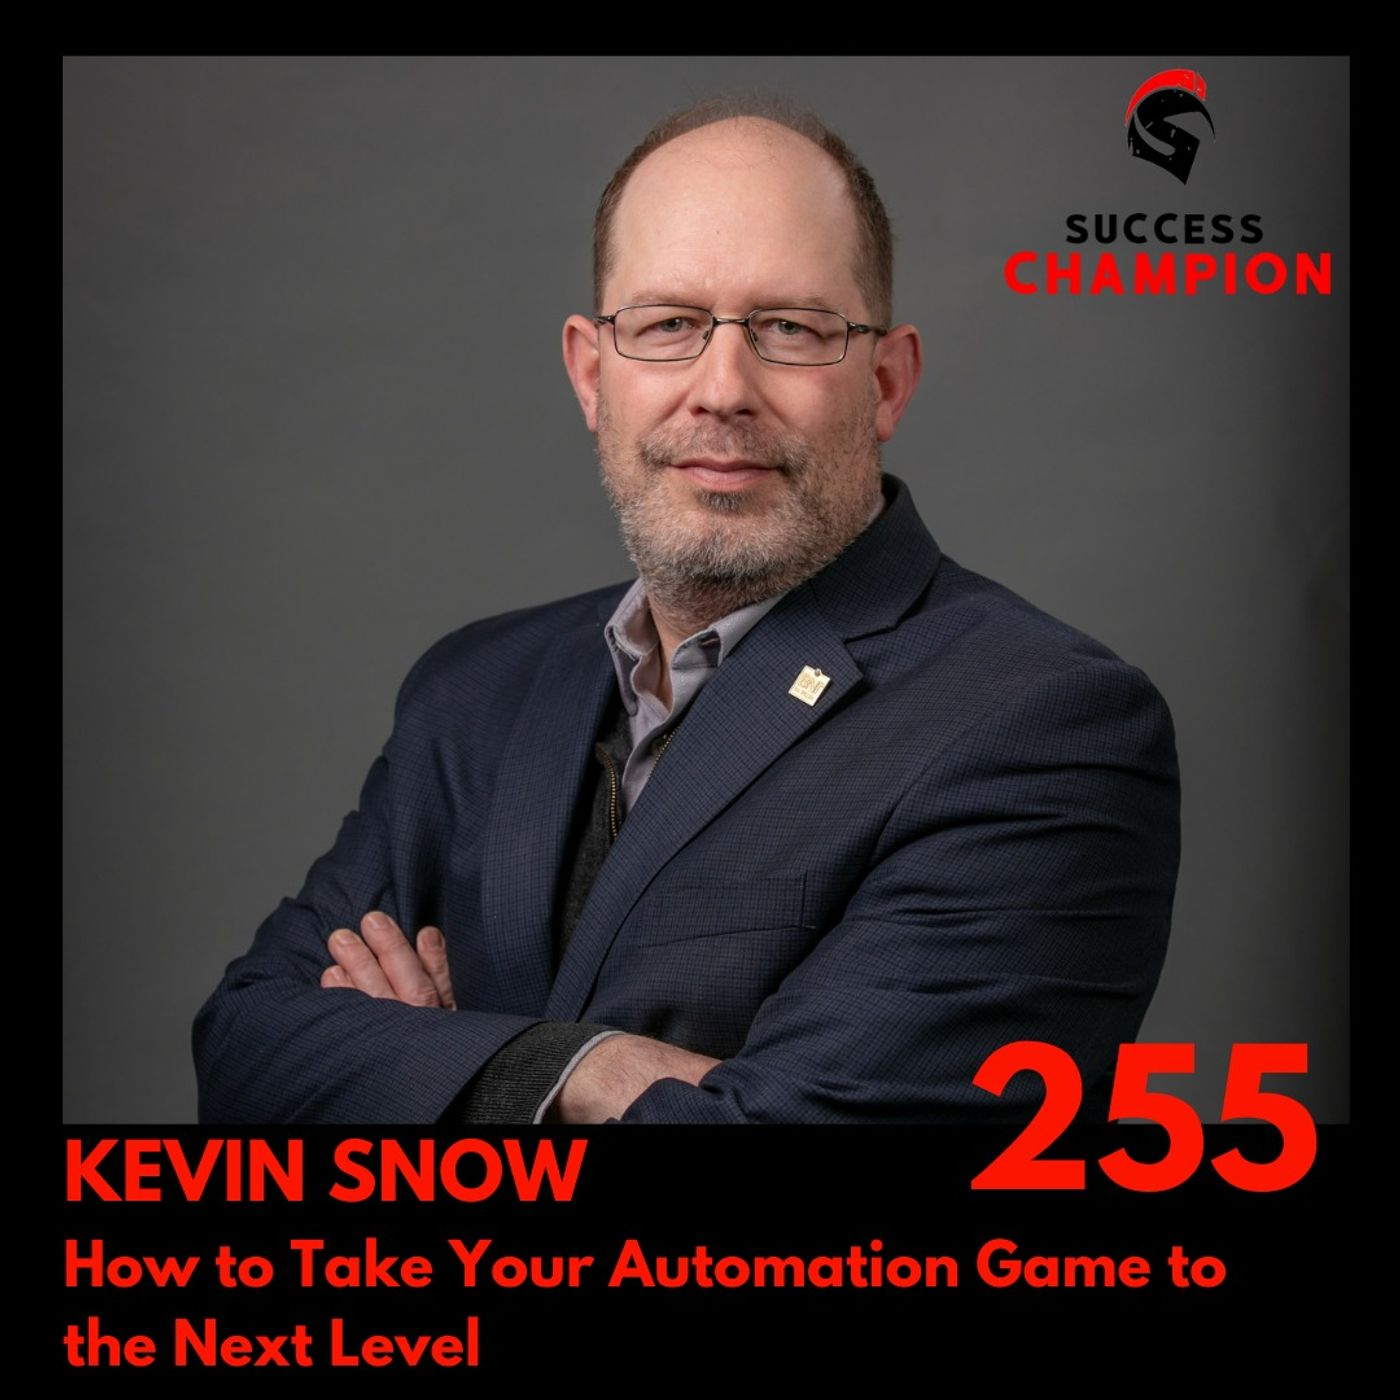 How to Take Your Automation Game to the Next Level - Kevin Snow